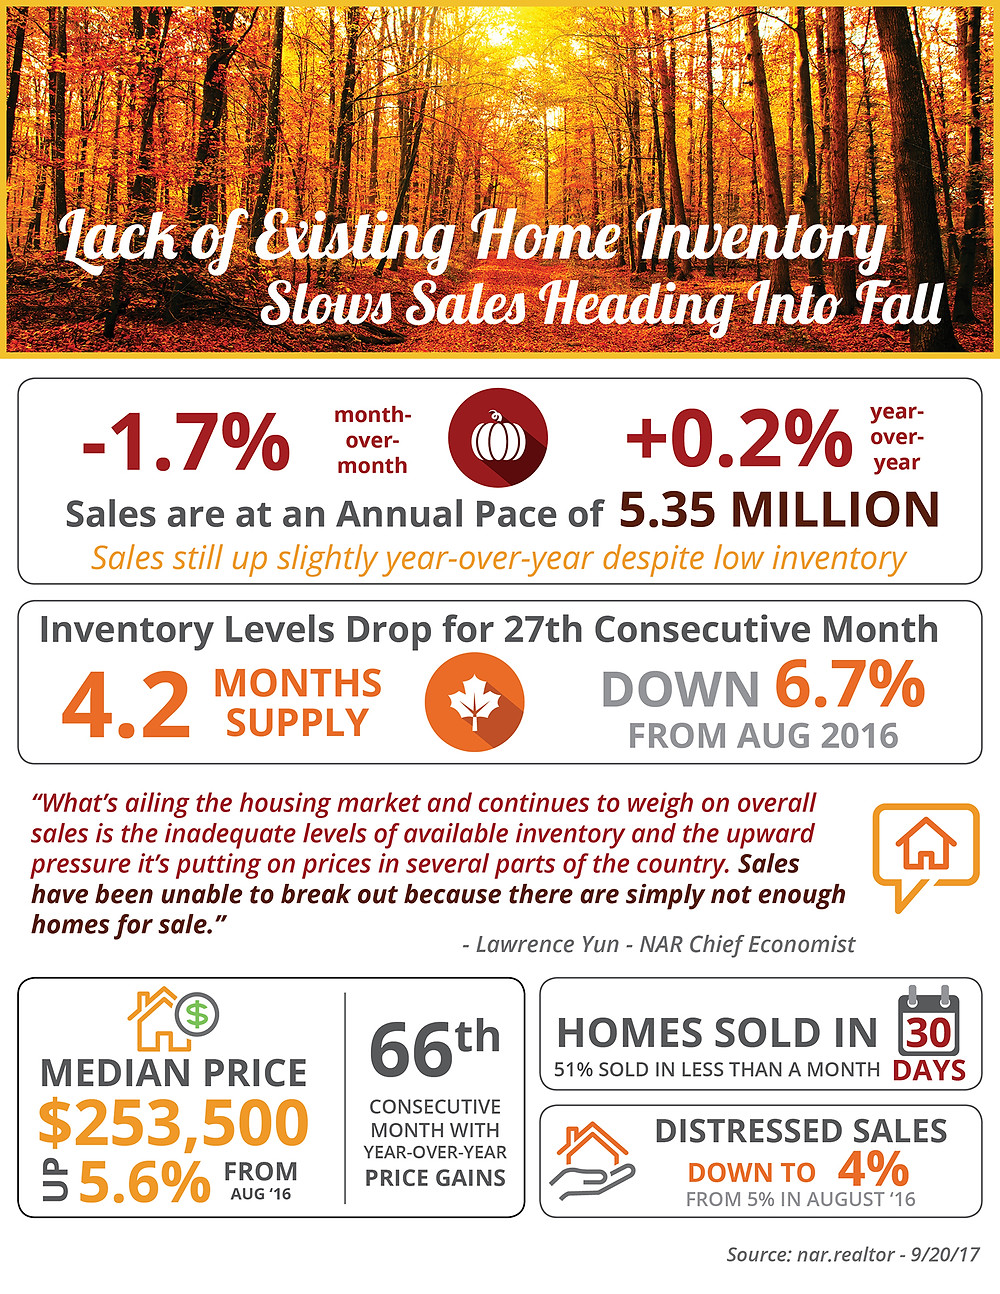 Lack of Existing Home Inventory Slows Sales Heading into Fall [INFOGRAPHIC]   Simplifying The Market